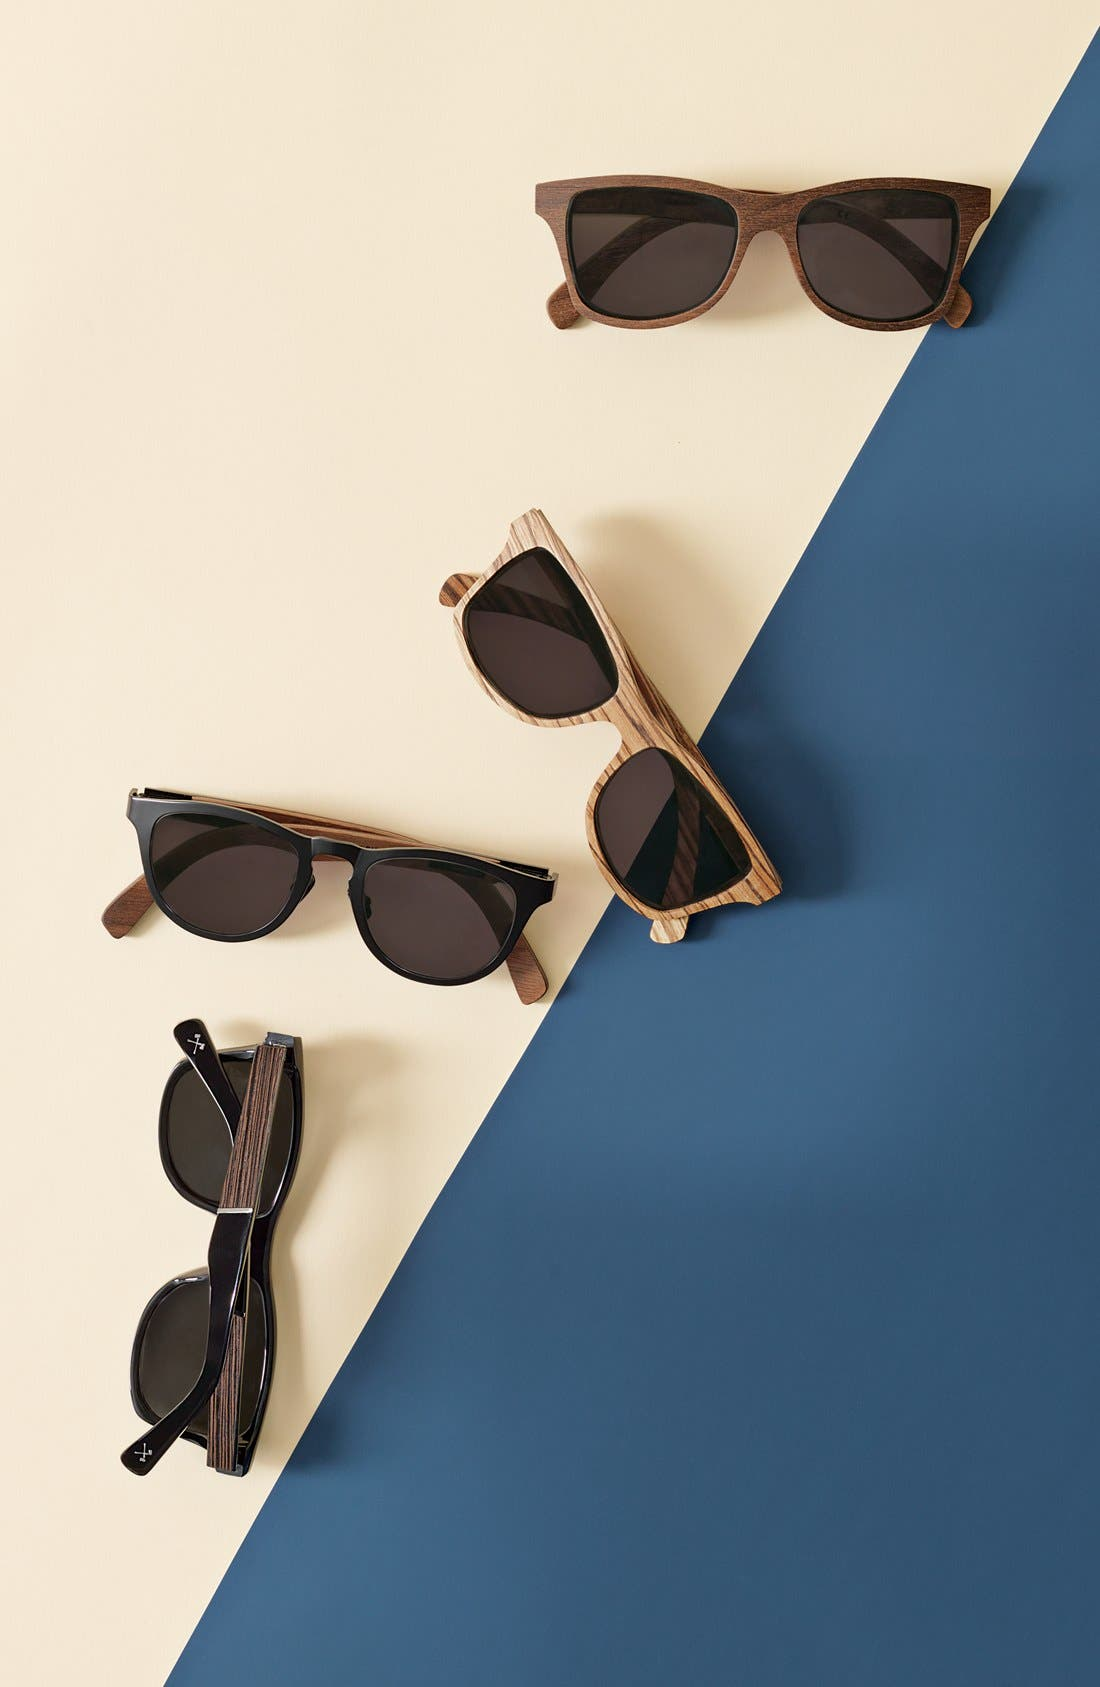 'Canby' 54mm Wood Sunglasses,                             Alternate thumbnail 3, color,                             200